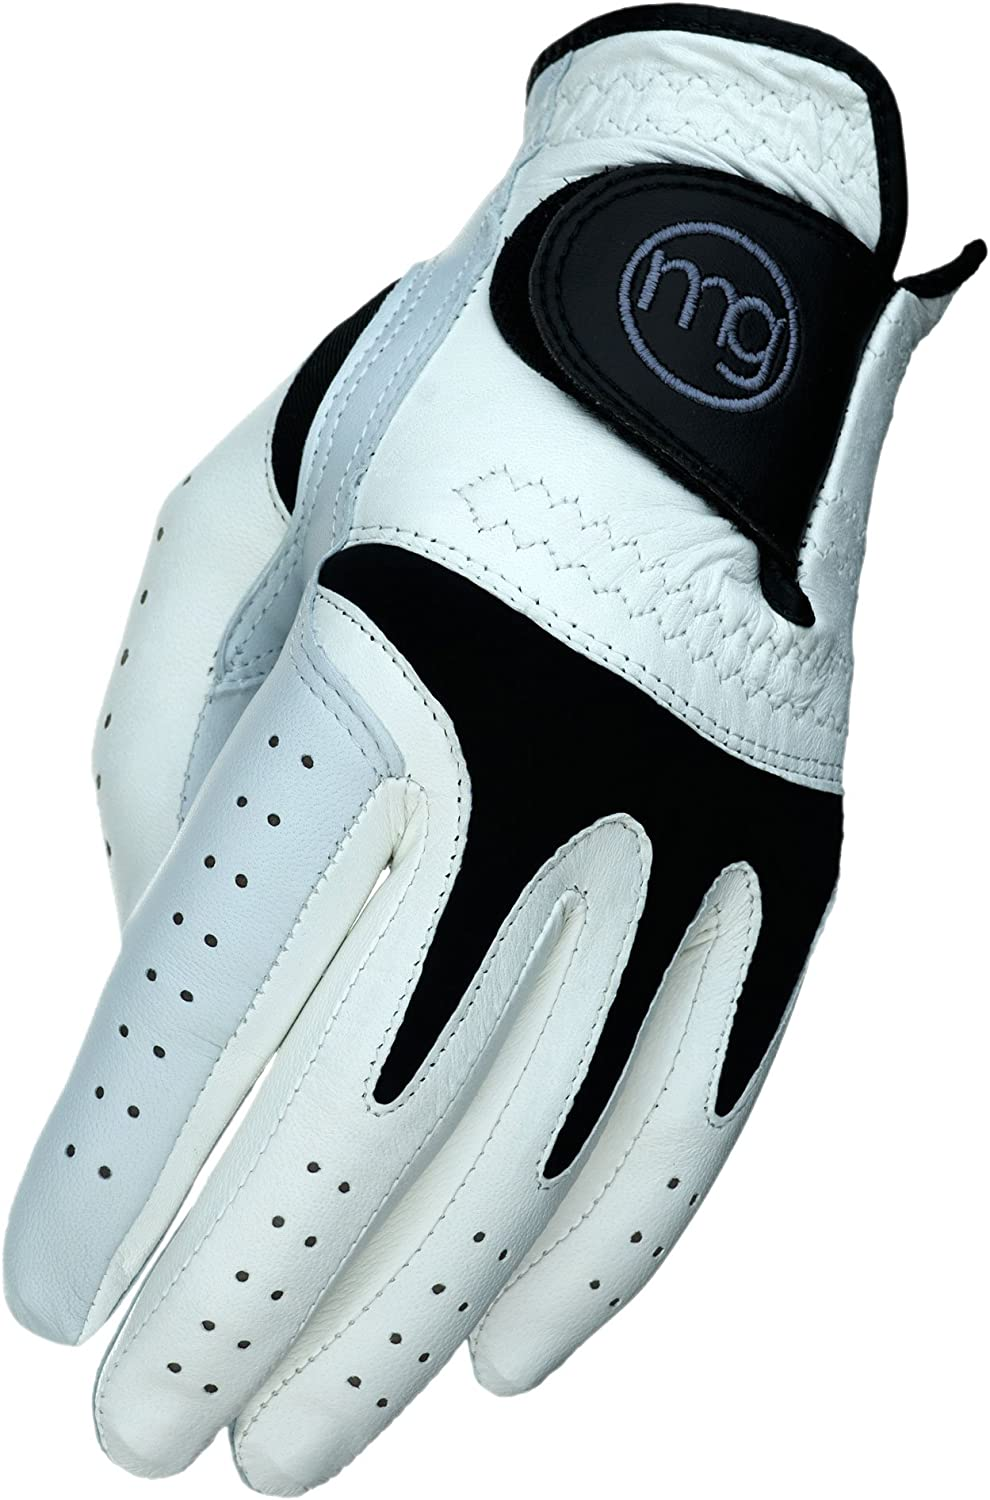 MG Golf Glove Ladies TechGrip All-Cabretta Leather